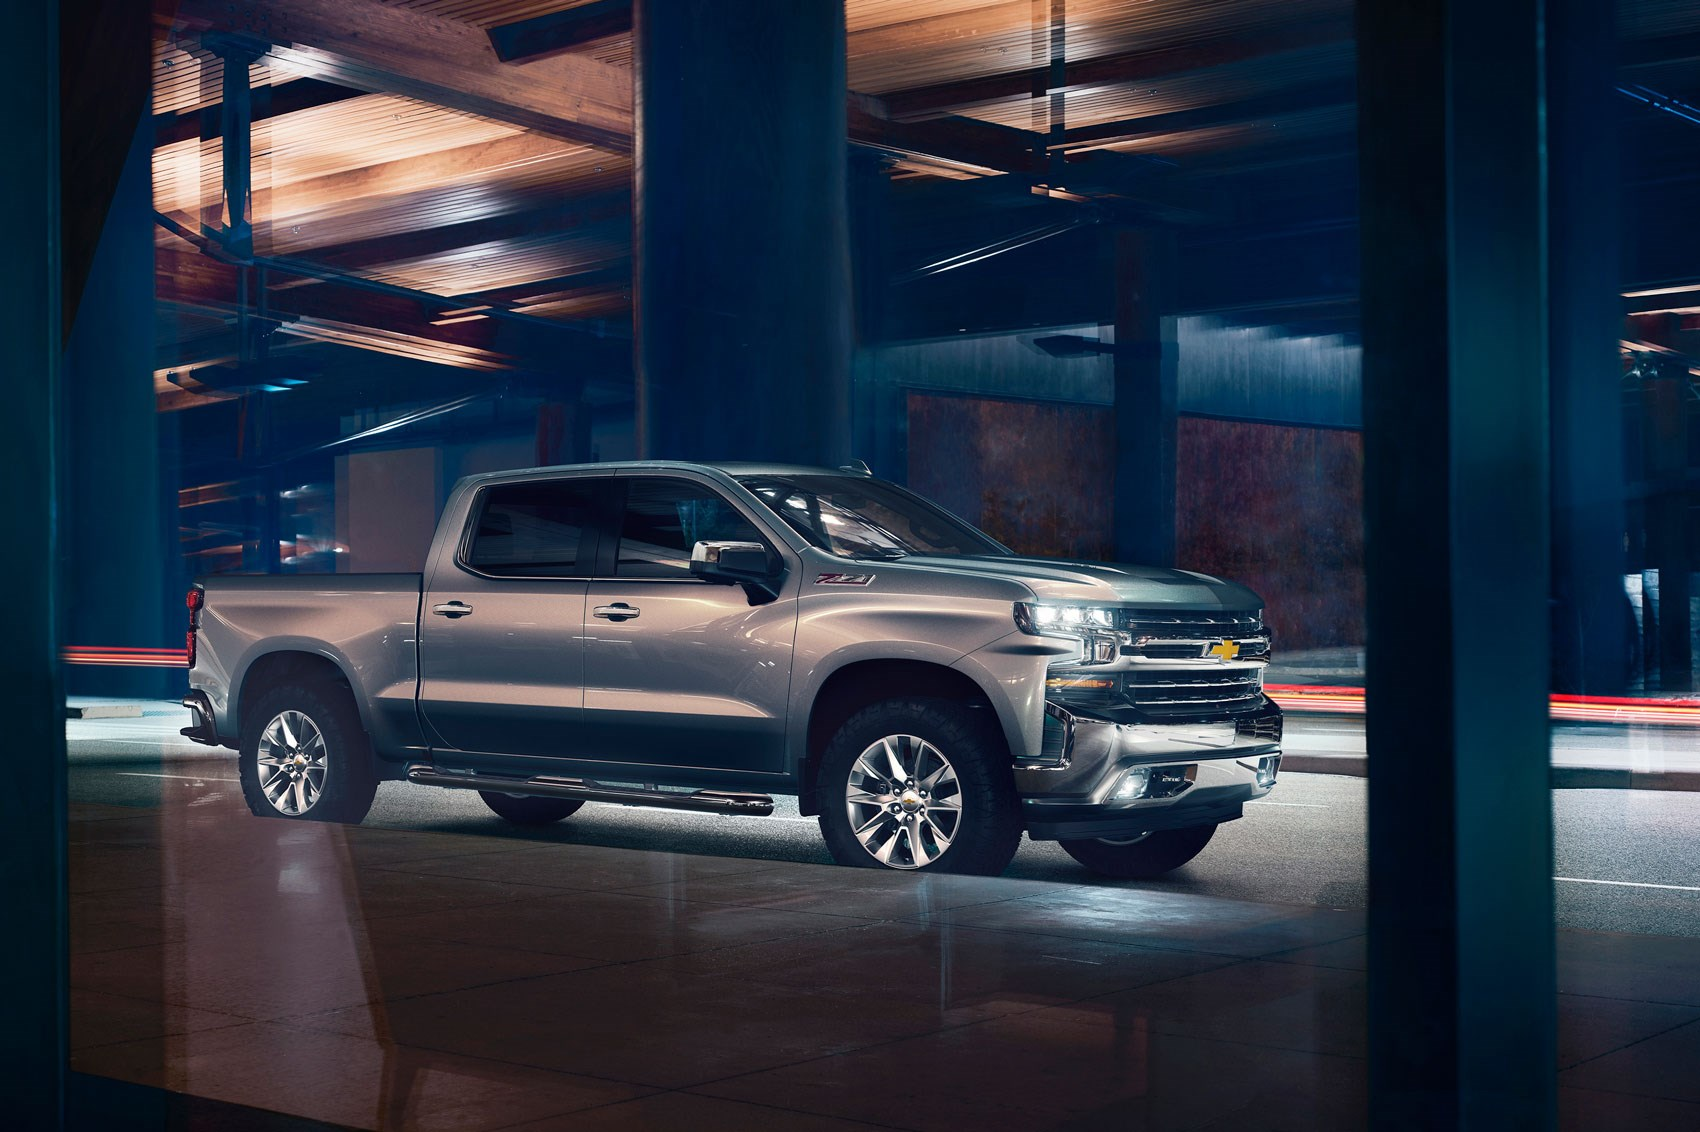 new chevy silverado 1500 pick up for the us masses updated for 2019 by car magazine. Black Bedroom Furniture Sets. Home Design Ideas